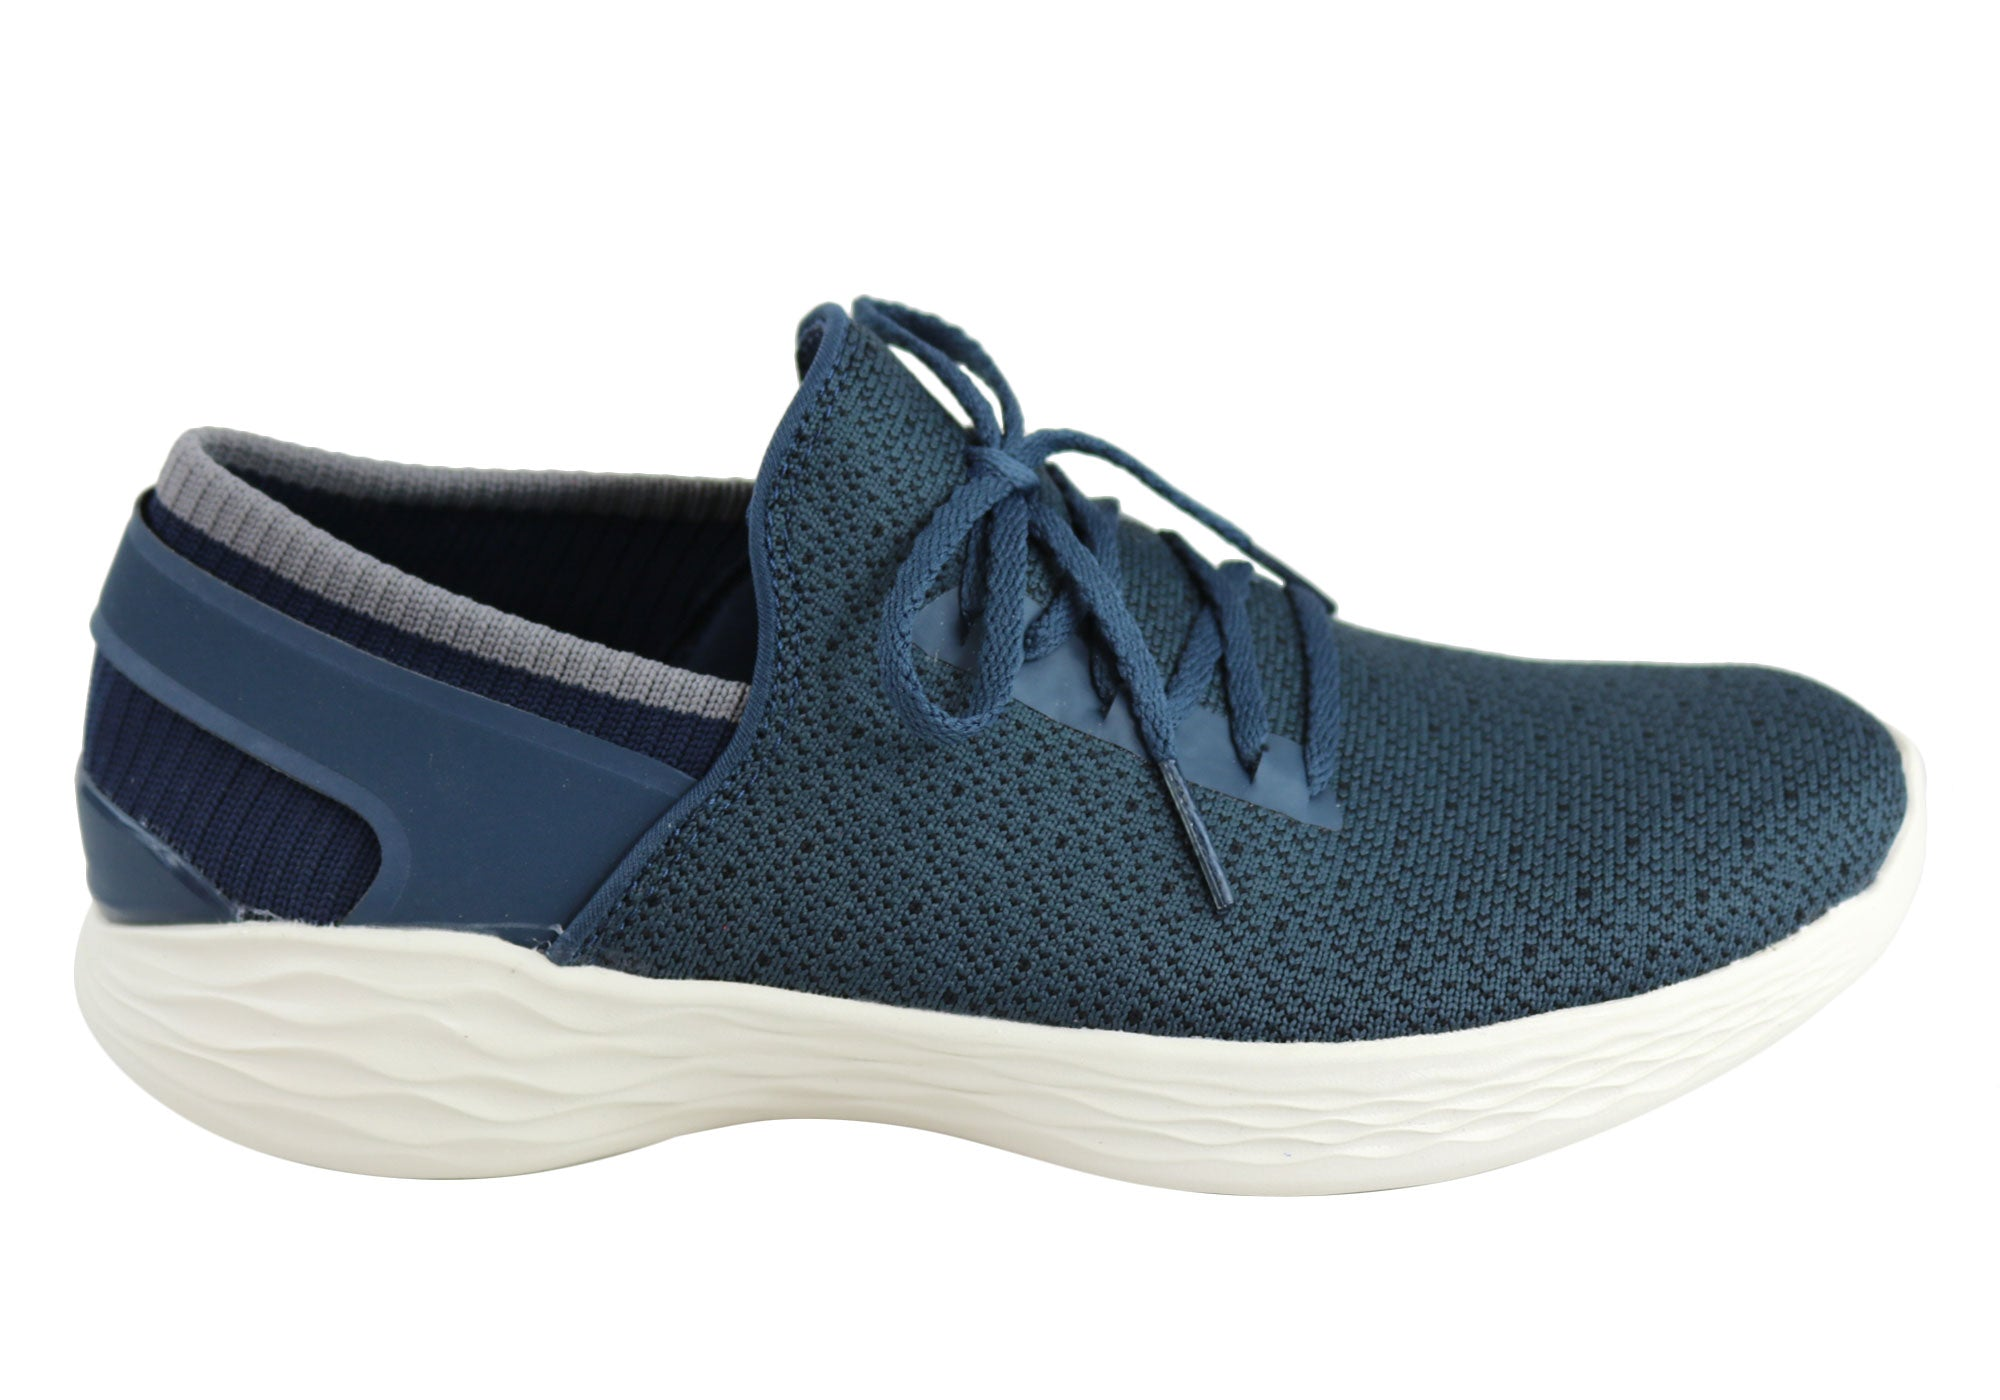 NEW-SKECHERS-YOU-WOMENS-INSPIRE-COMFORTABLE-CASUAL-SLIP-ON-SHOES